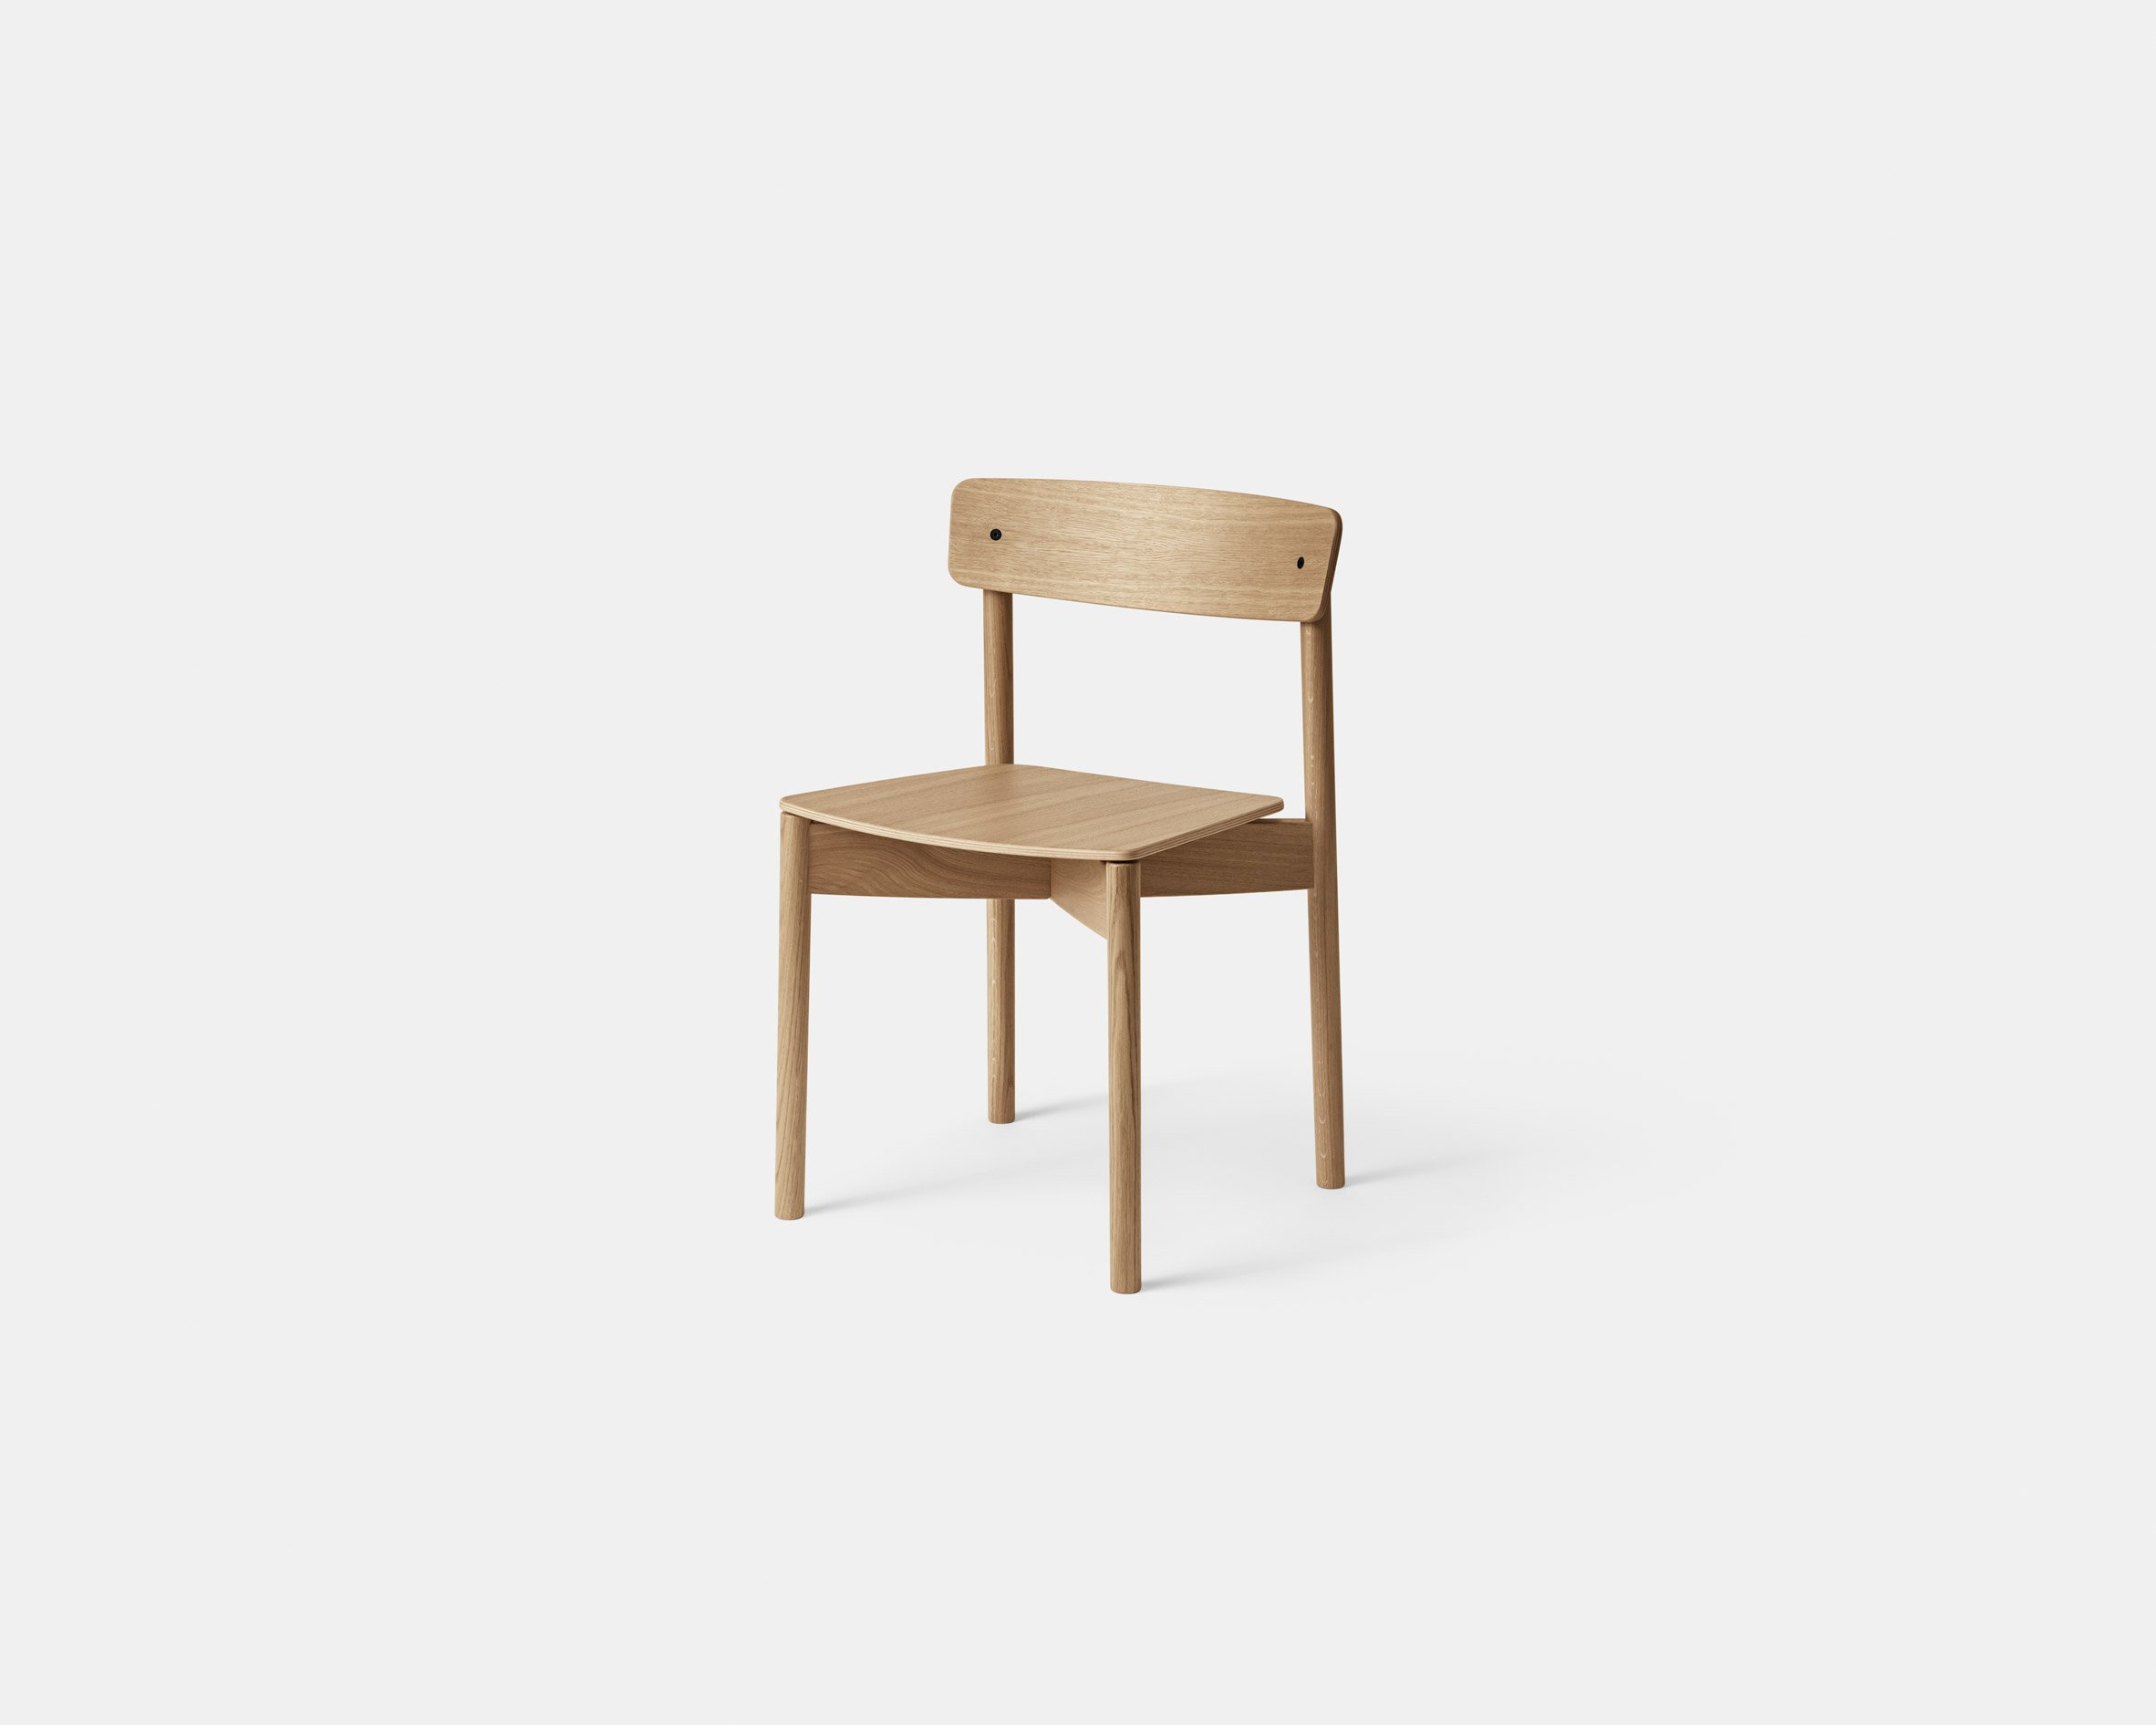 Cross Chair by Pearson Loyd for Takt as seen from the front